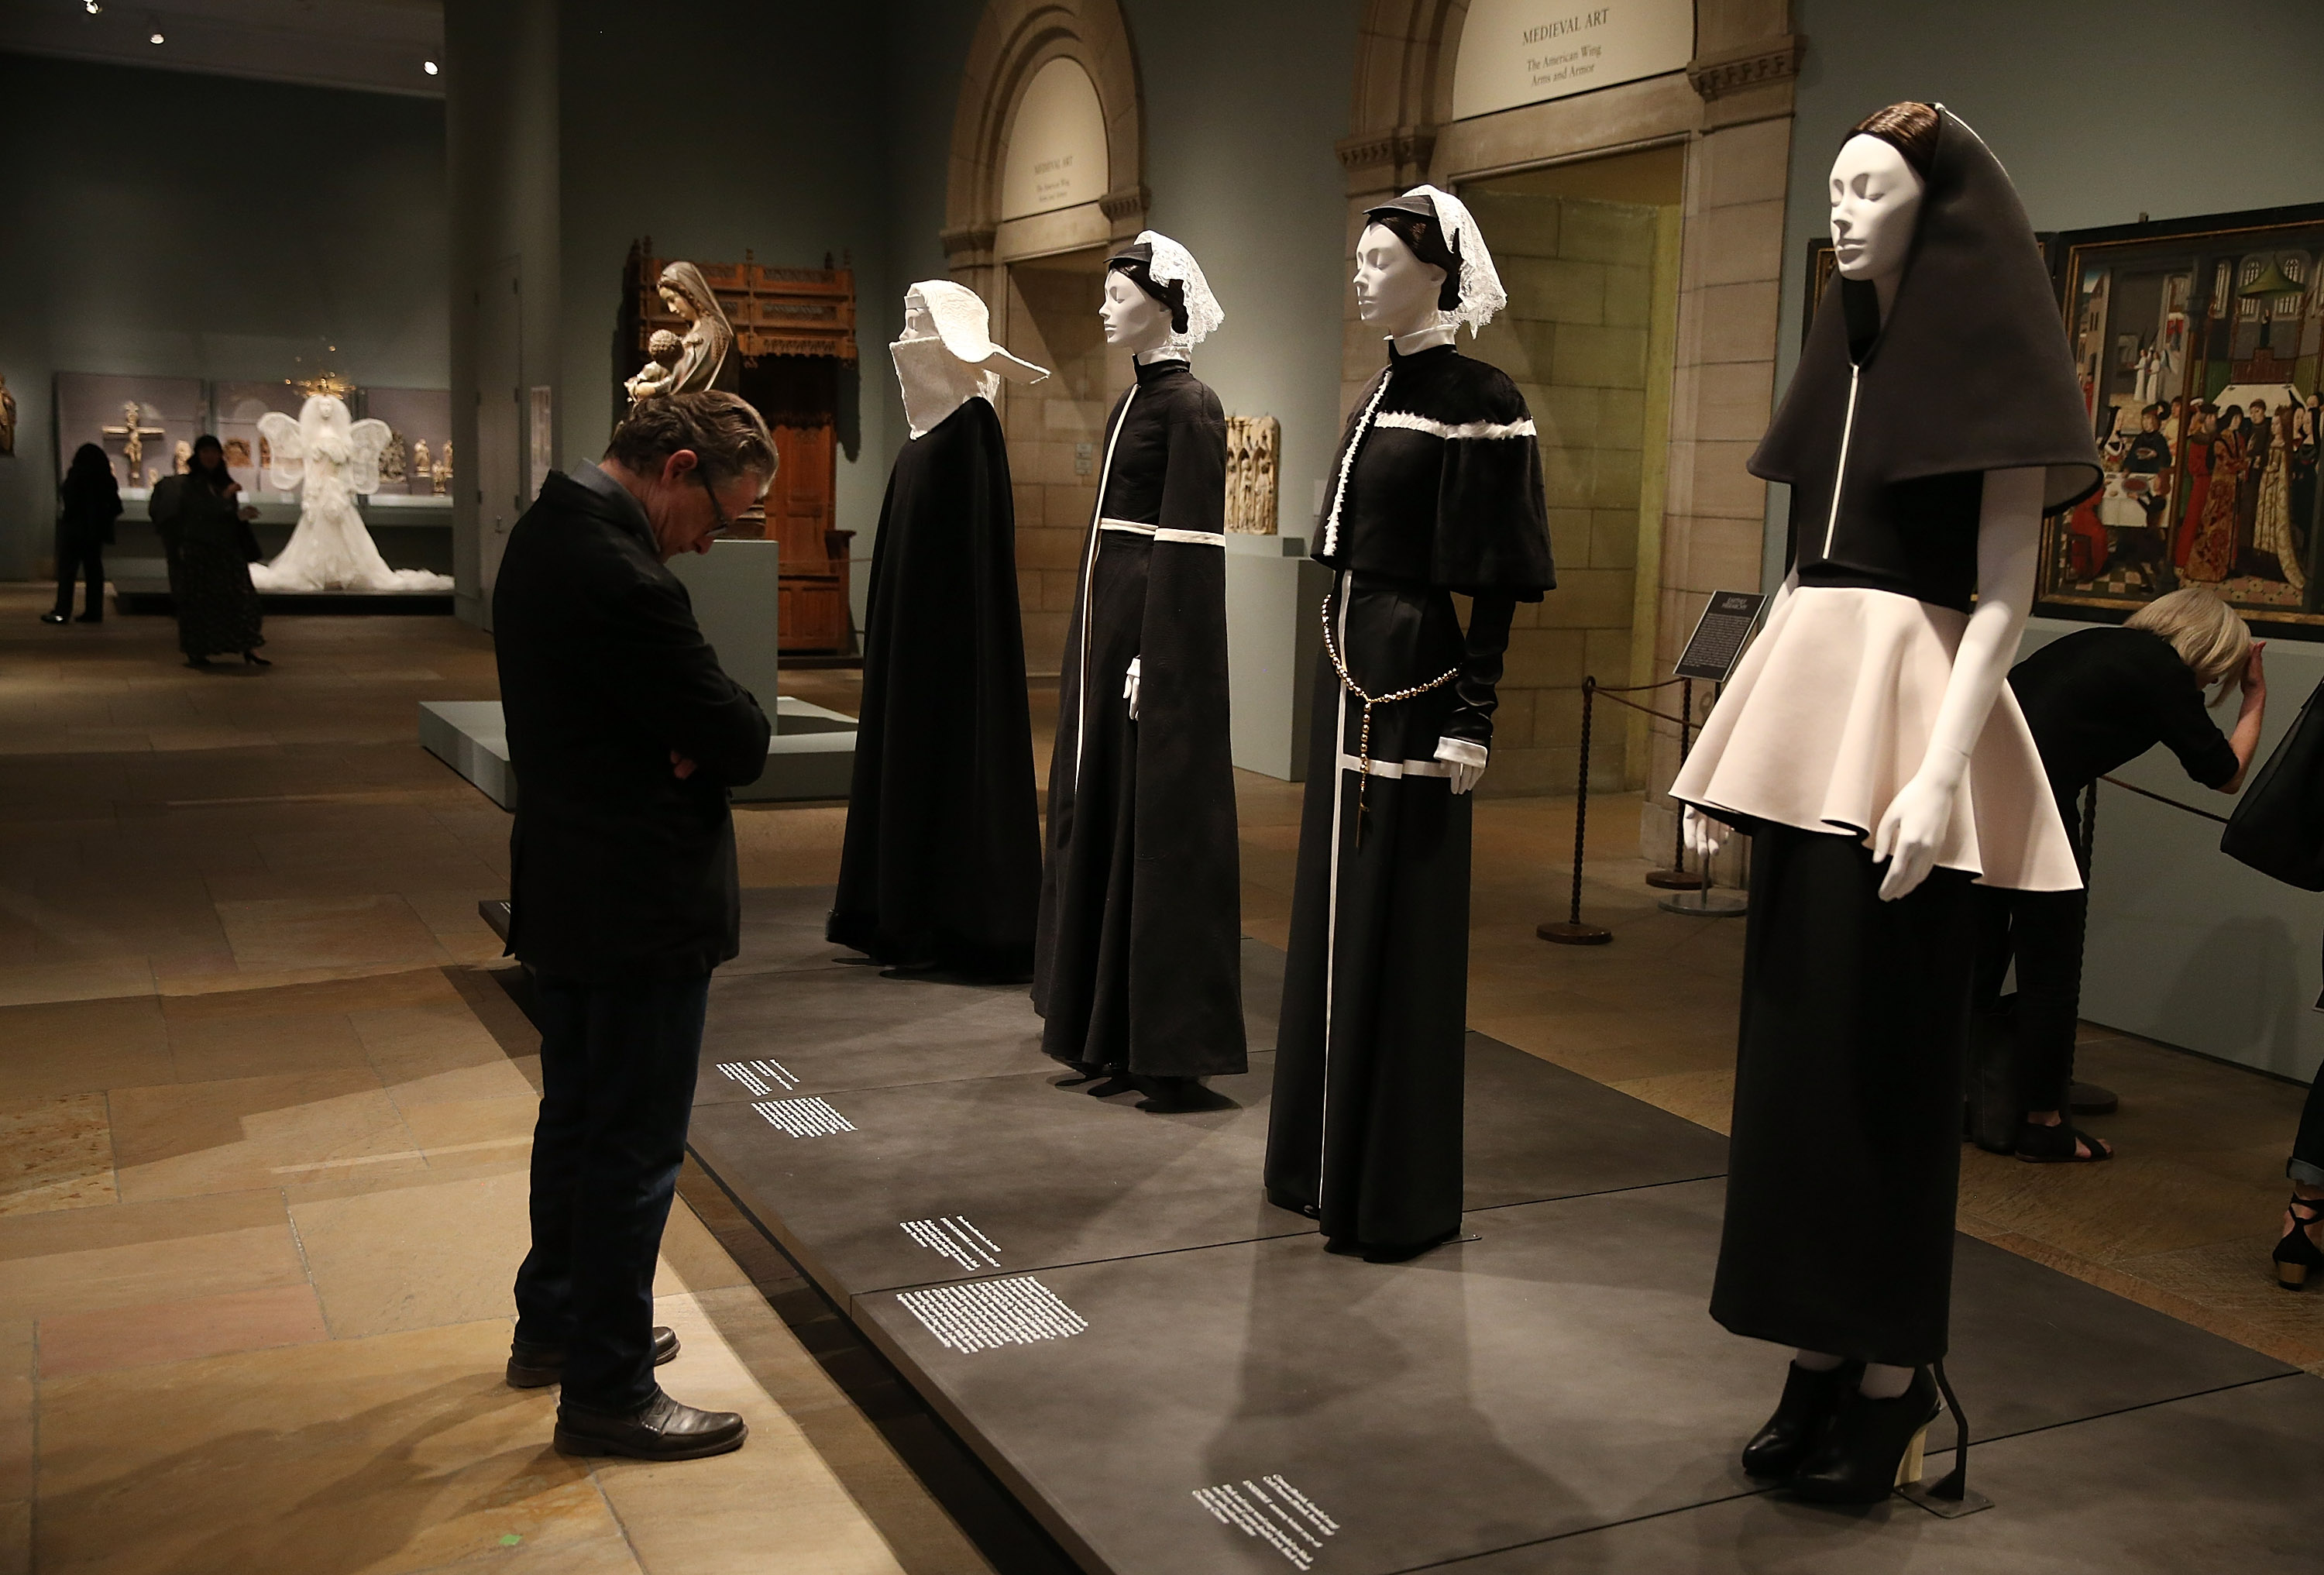 NEW YORK, NY - MAY 07:  A patron looks at fashion on display during the Heavenly Bodies: Fashion & The Catholic Imagination Costume Institute Gala Press Preview at The Metropolitan Museum of Art on May 7, 2018 in New York City.  (Photo by Jemal Countess/Getty Images)